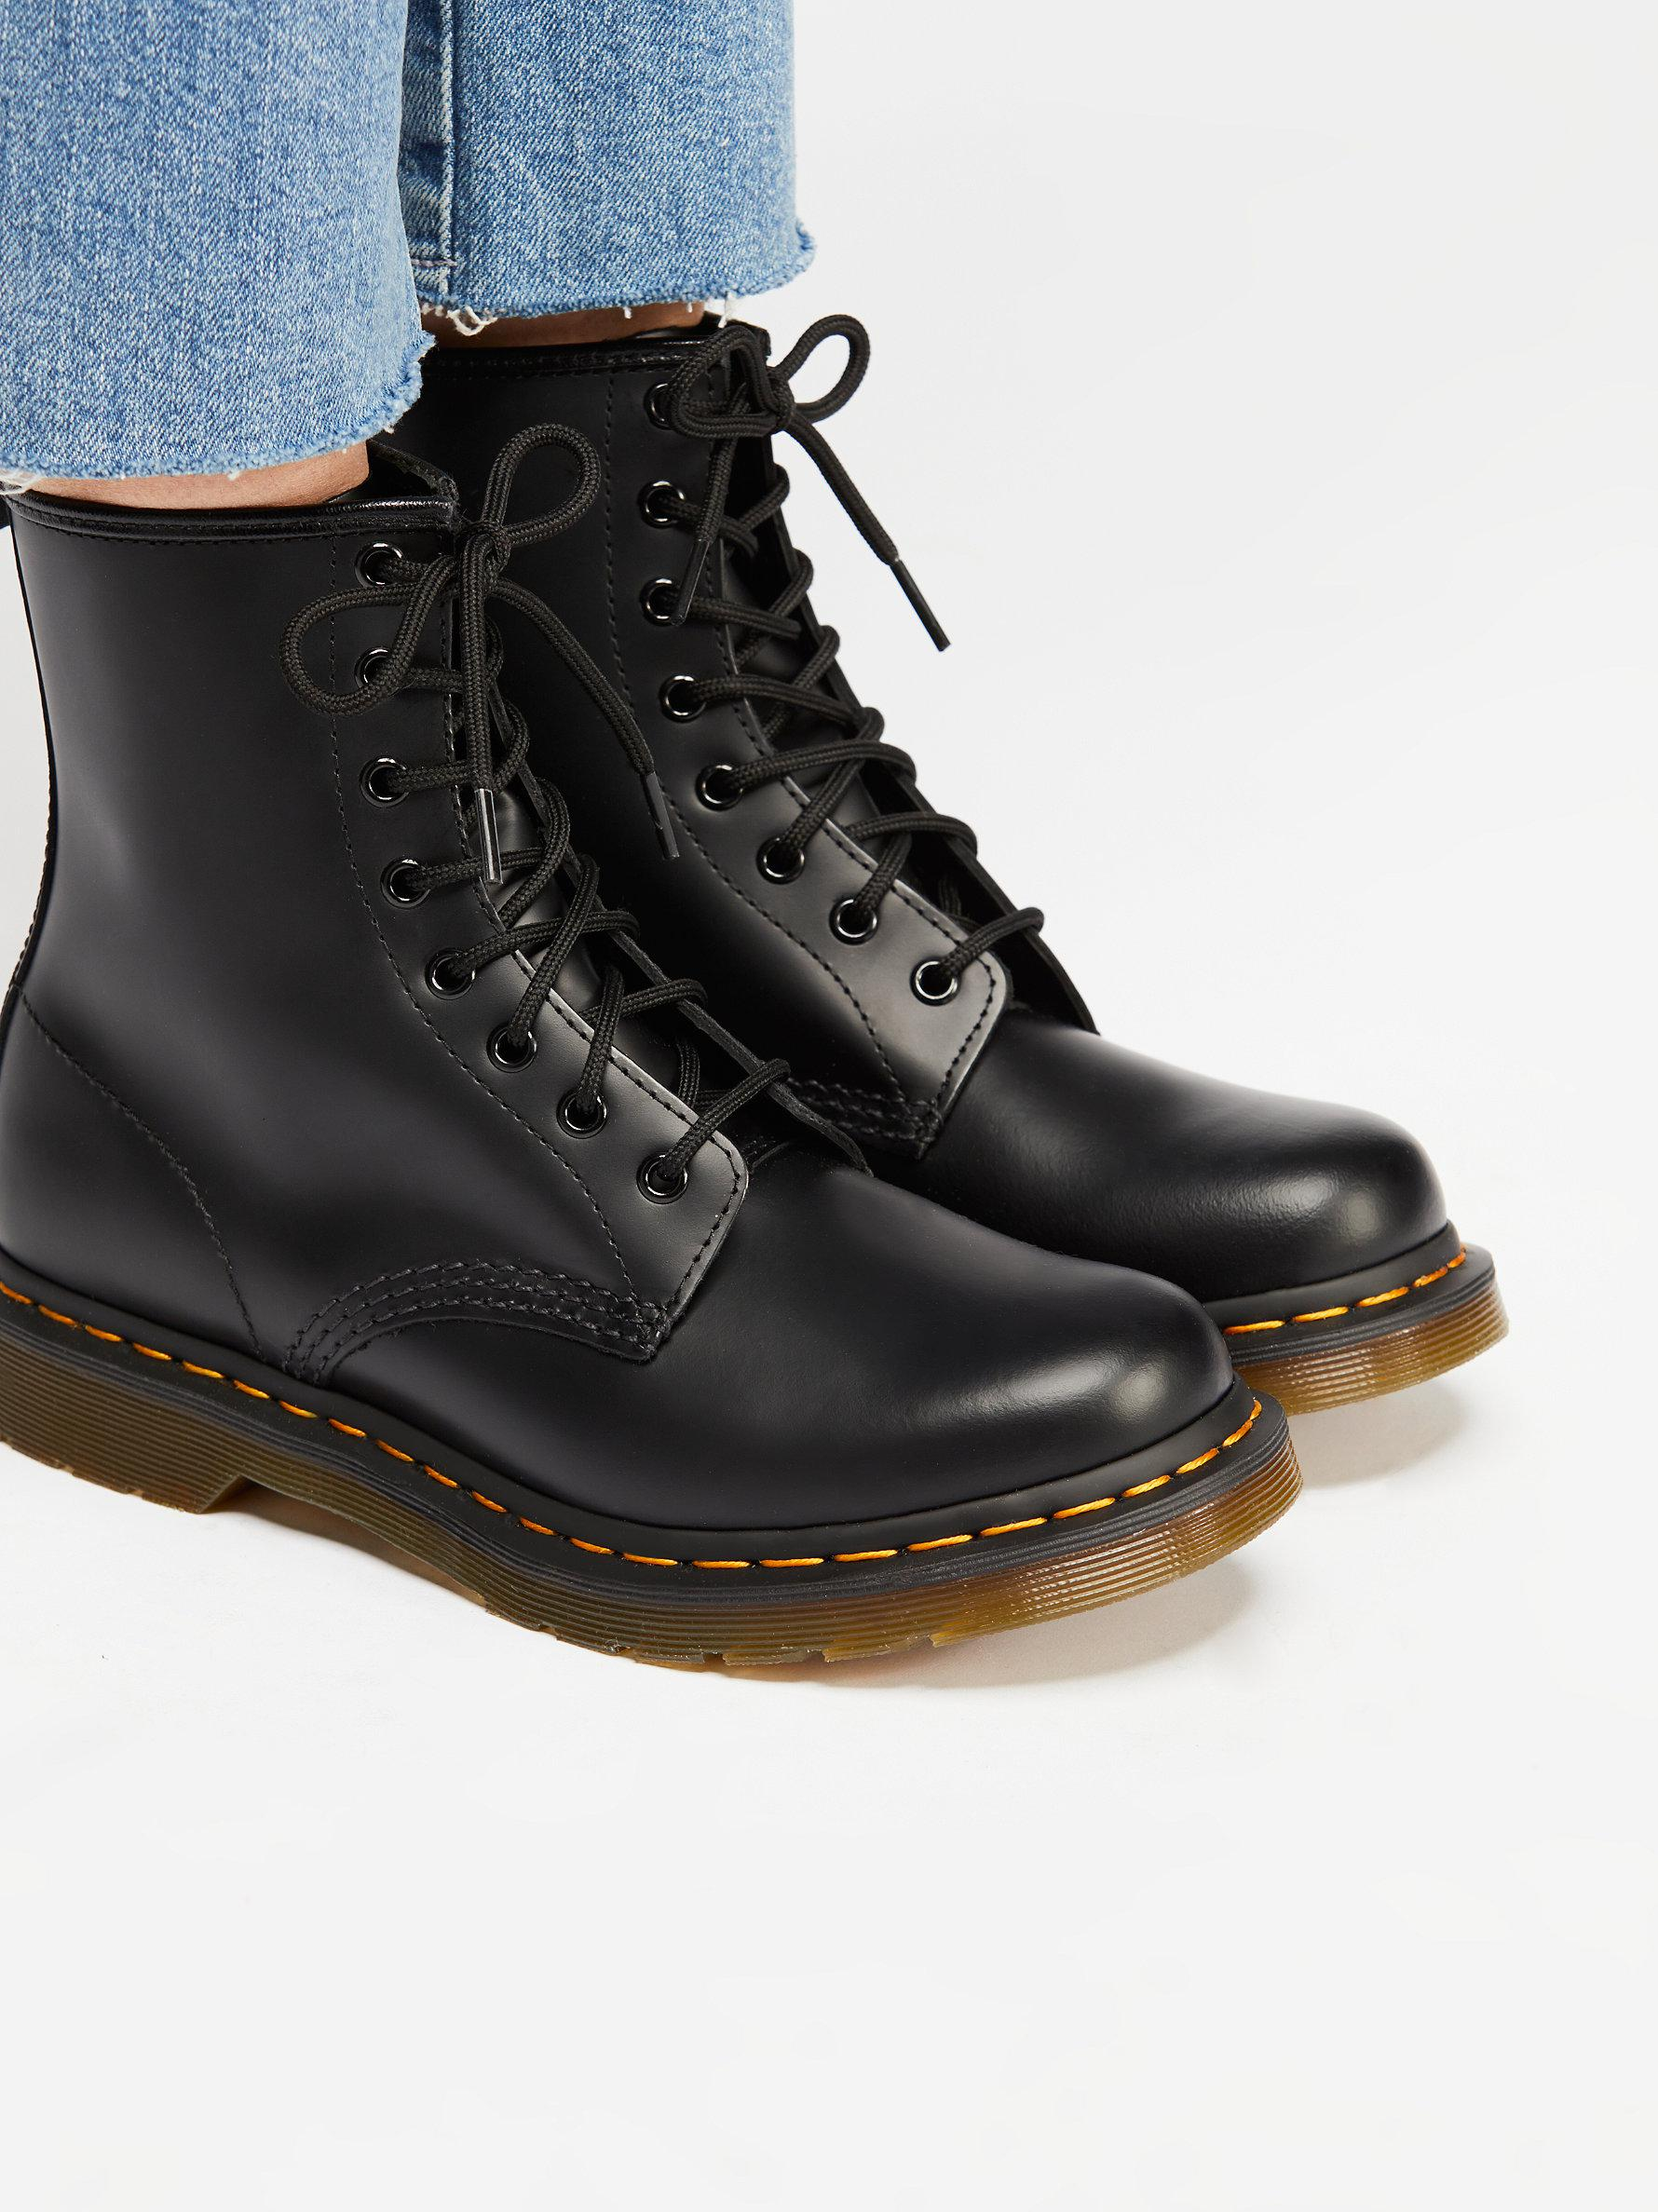 Free People Rubber Dr. Martens 1460 Lace-up Boot in Black